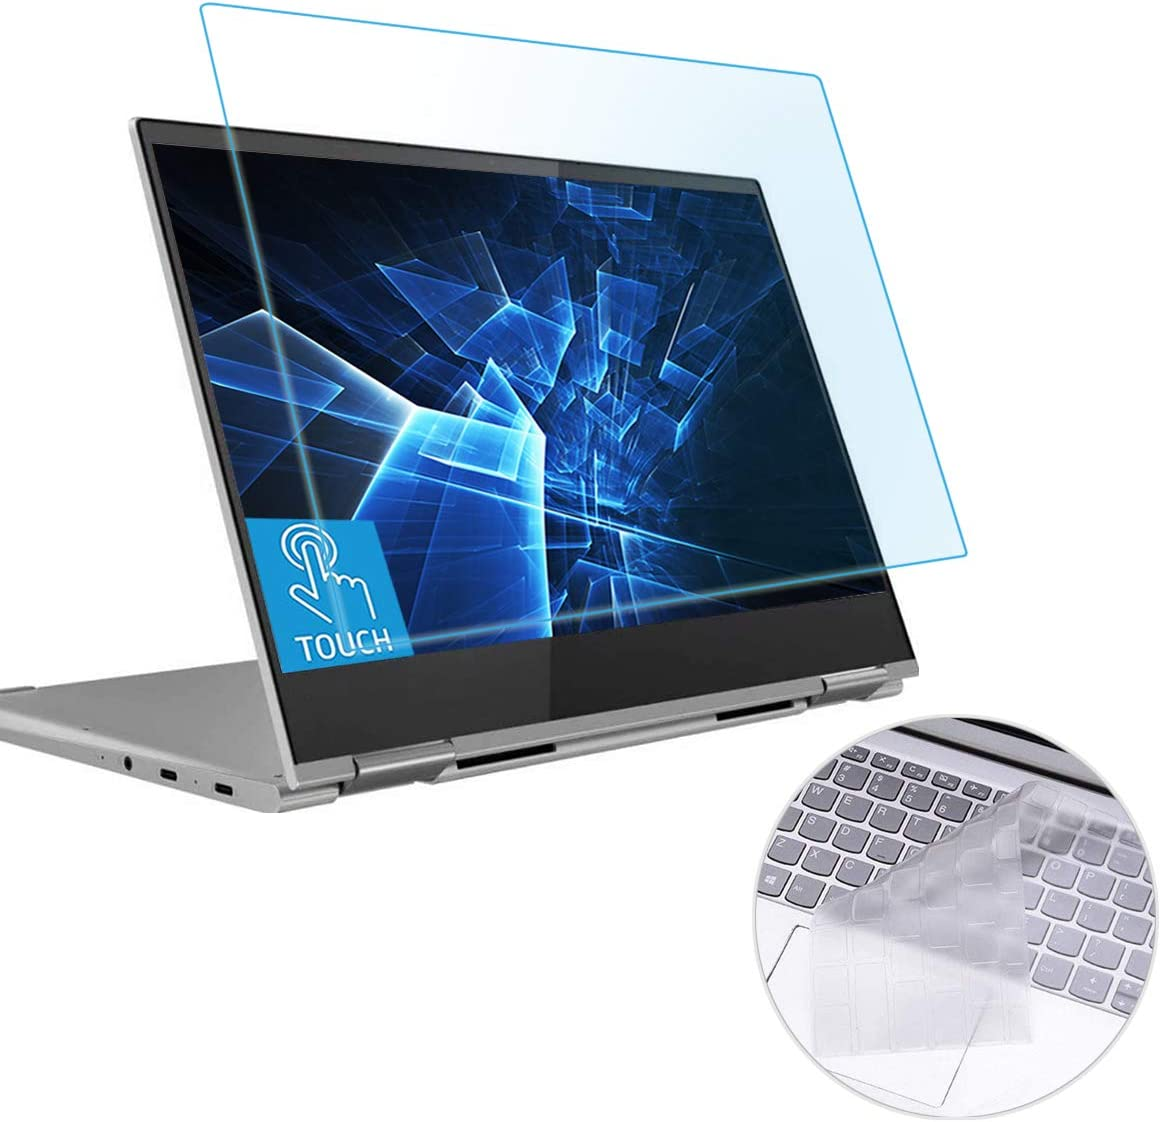 "MUBUY Anti Blue Light Glare Screen Protector Fit Lenovo Yoga C940 14"" Touchscreen & Keyboard Cover Ultra Thin TPU, Eyes Protection Filter Reduces Eye Strain Help You Sleep Better, Anti Fingerprint"